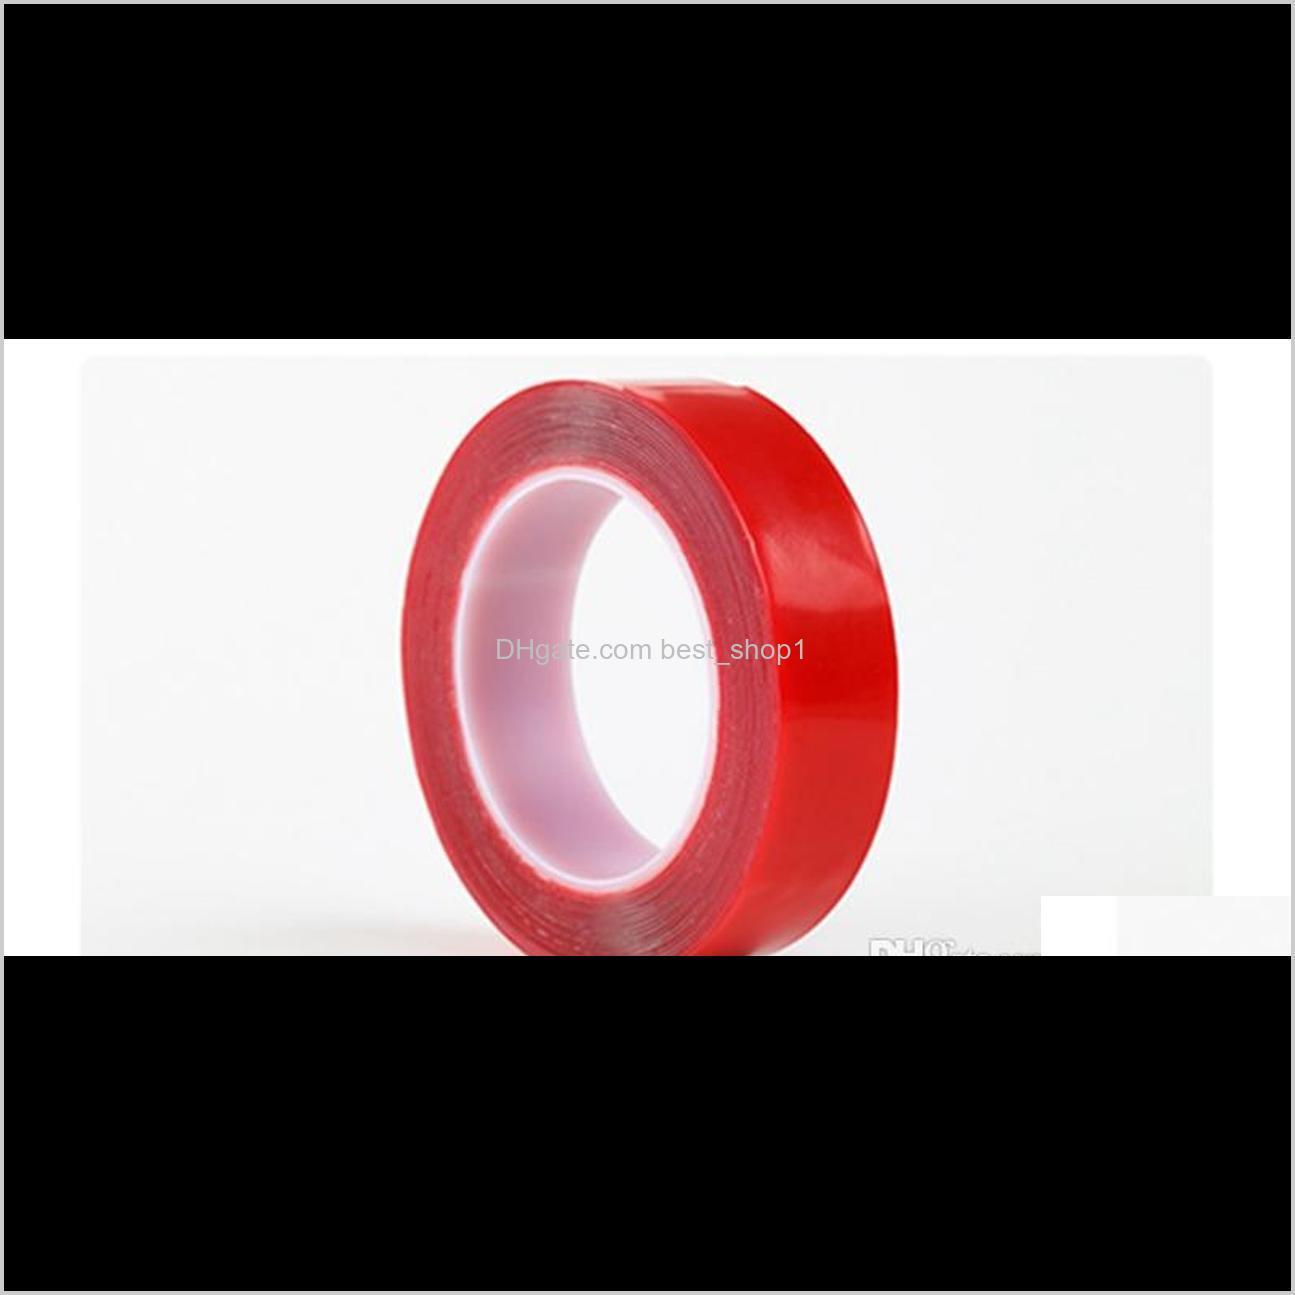 300 cm transparent double side tape clear acrylic tape seamless tape heat resistant strong adhesive removable waterproof 12mm 15mm